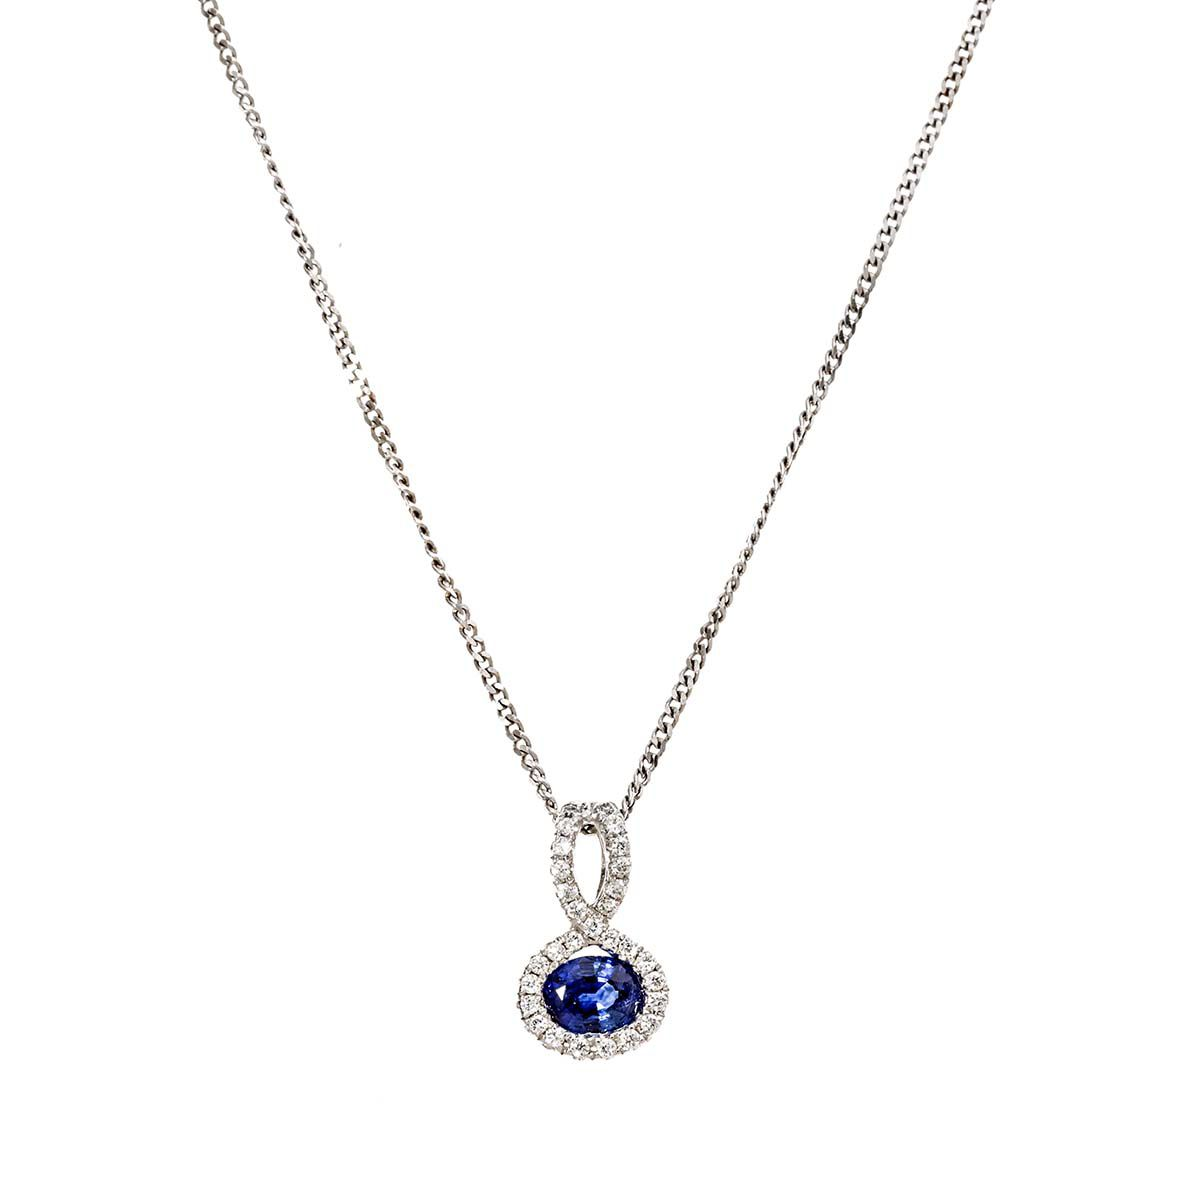 1200x1200 White Gold Oval Shaped Diamond And Sapphire Pendant